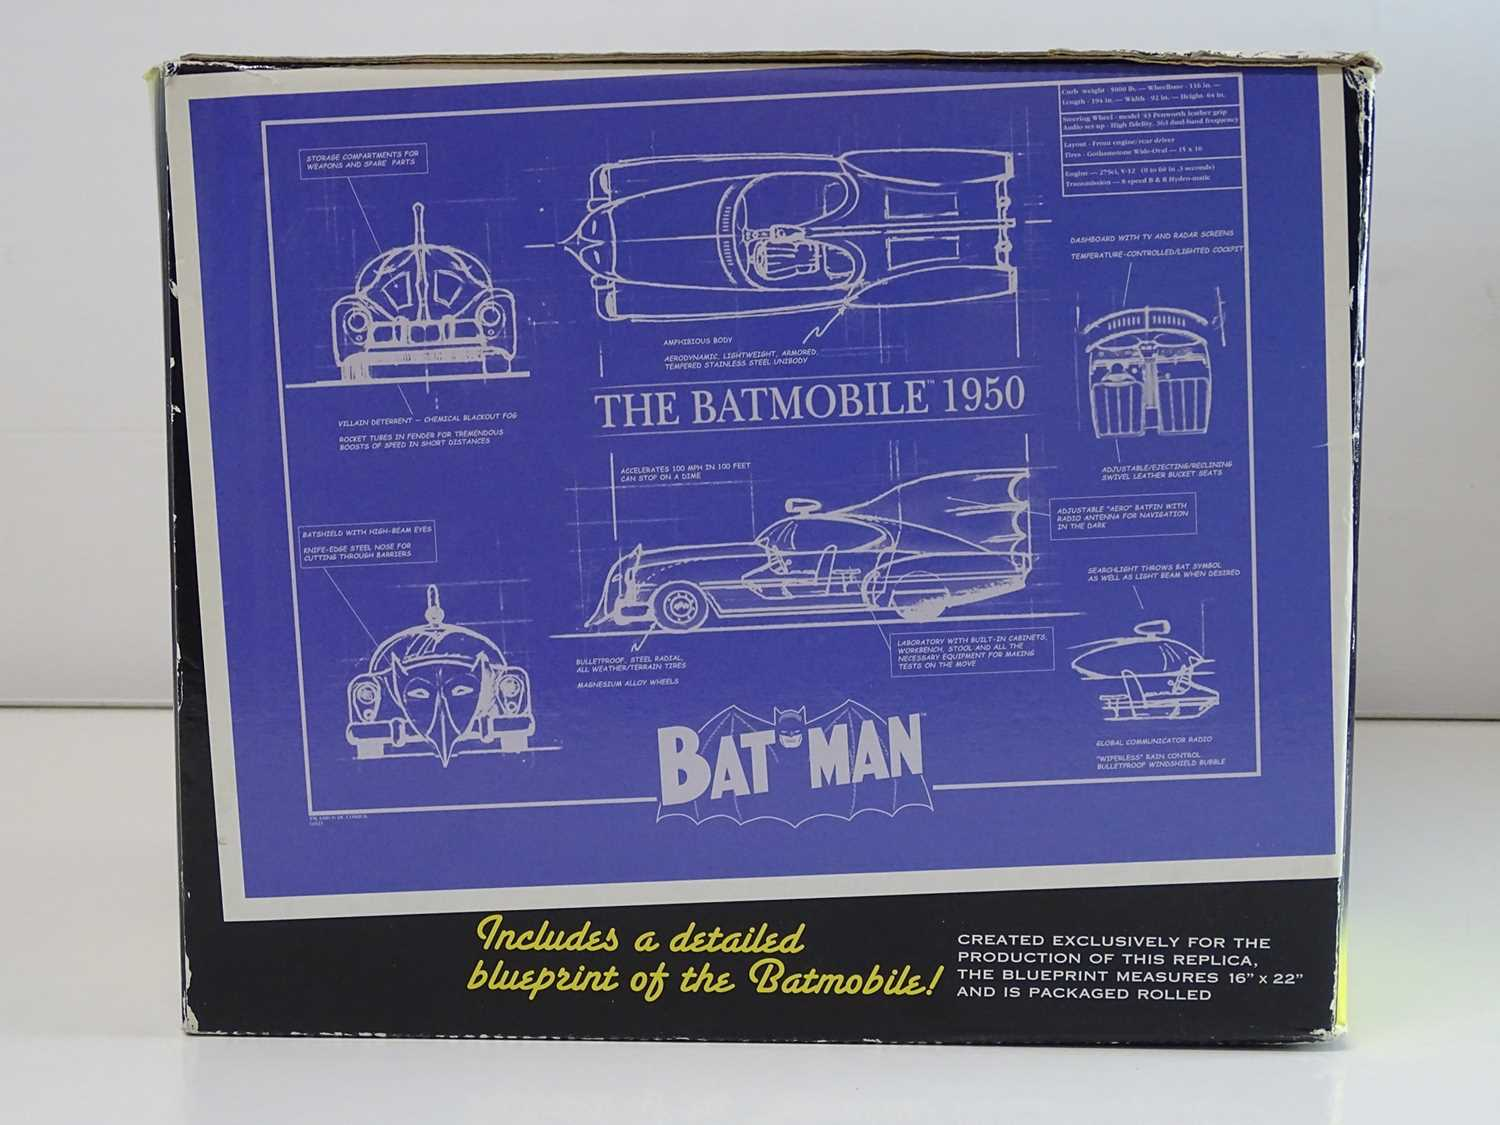 BATMAN: BATMOBILE REPLICA - 1950's EDITION - Limited Edition of 1,500 + Hand painted cold-cast - Image 5 of 5